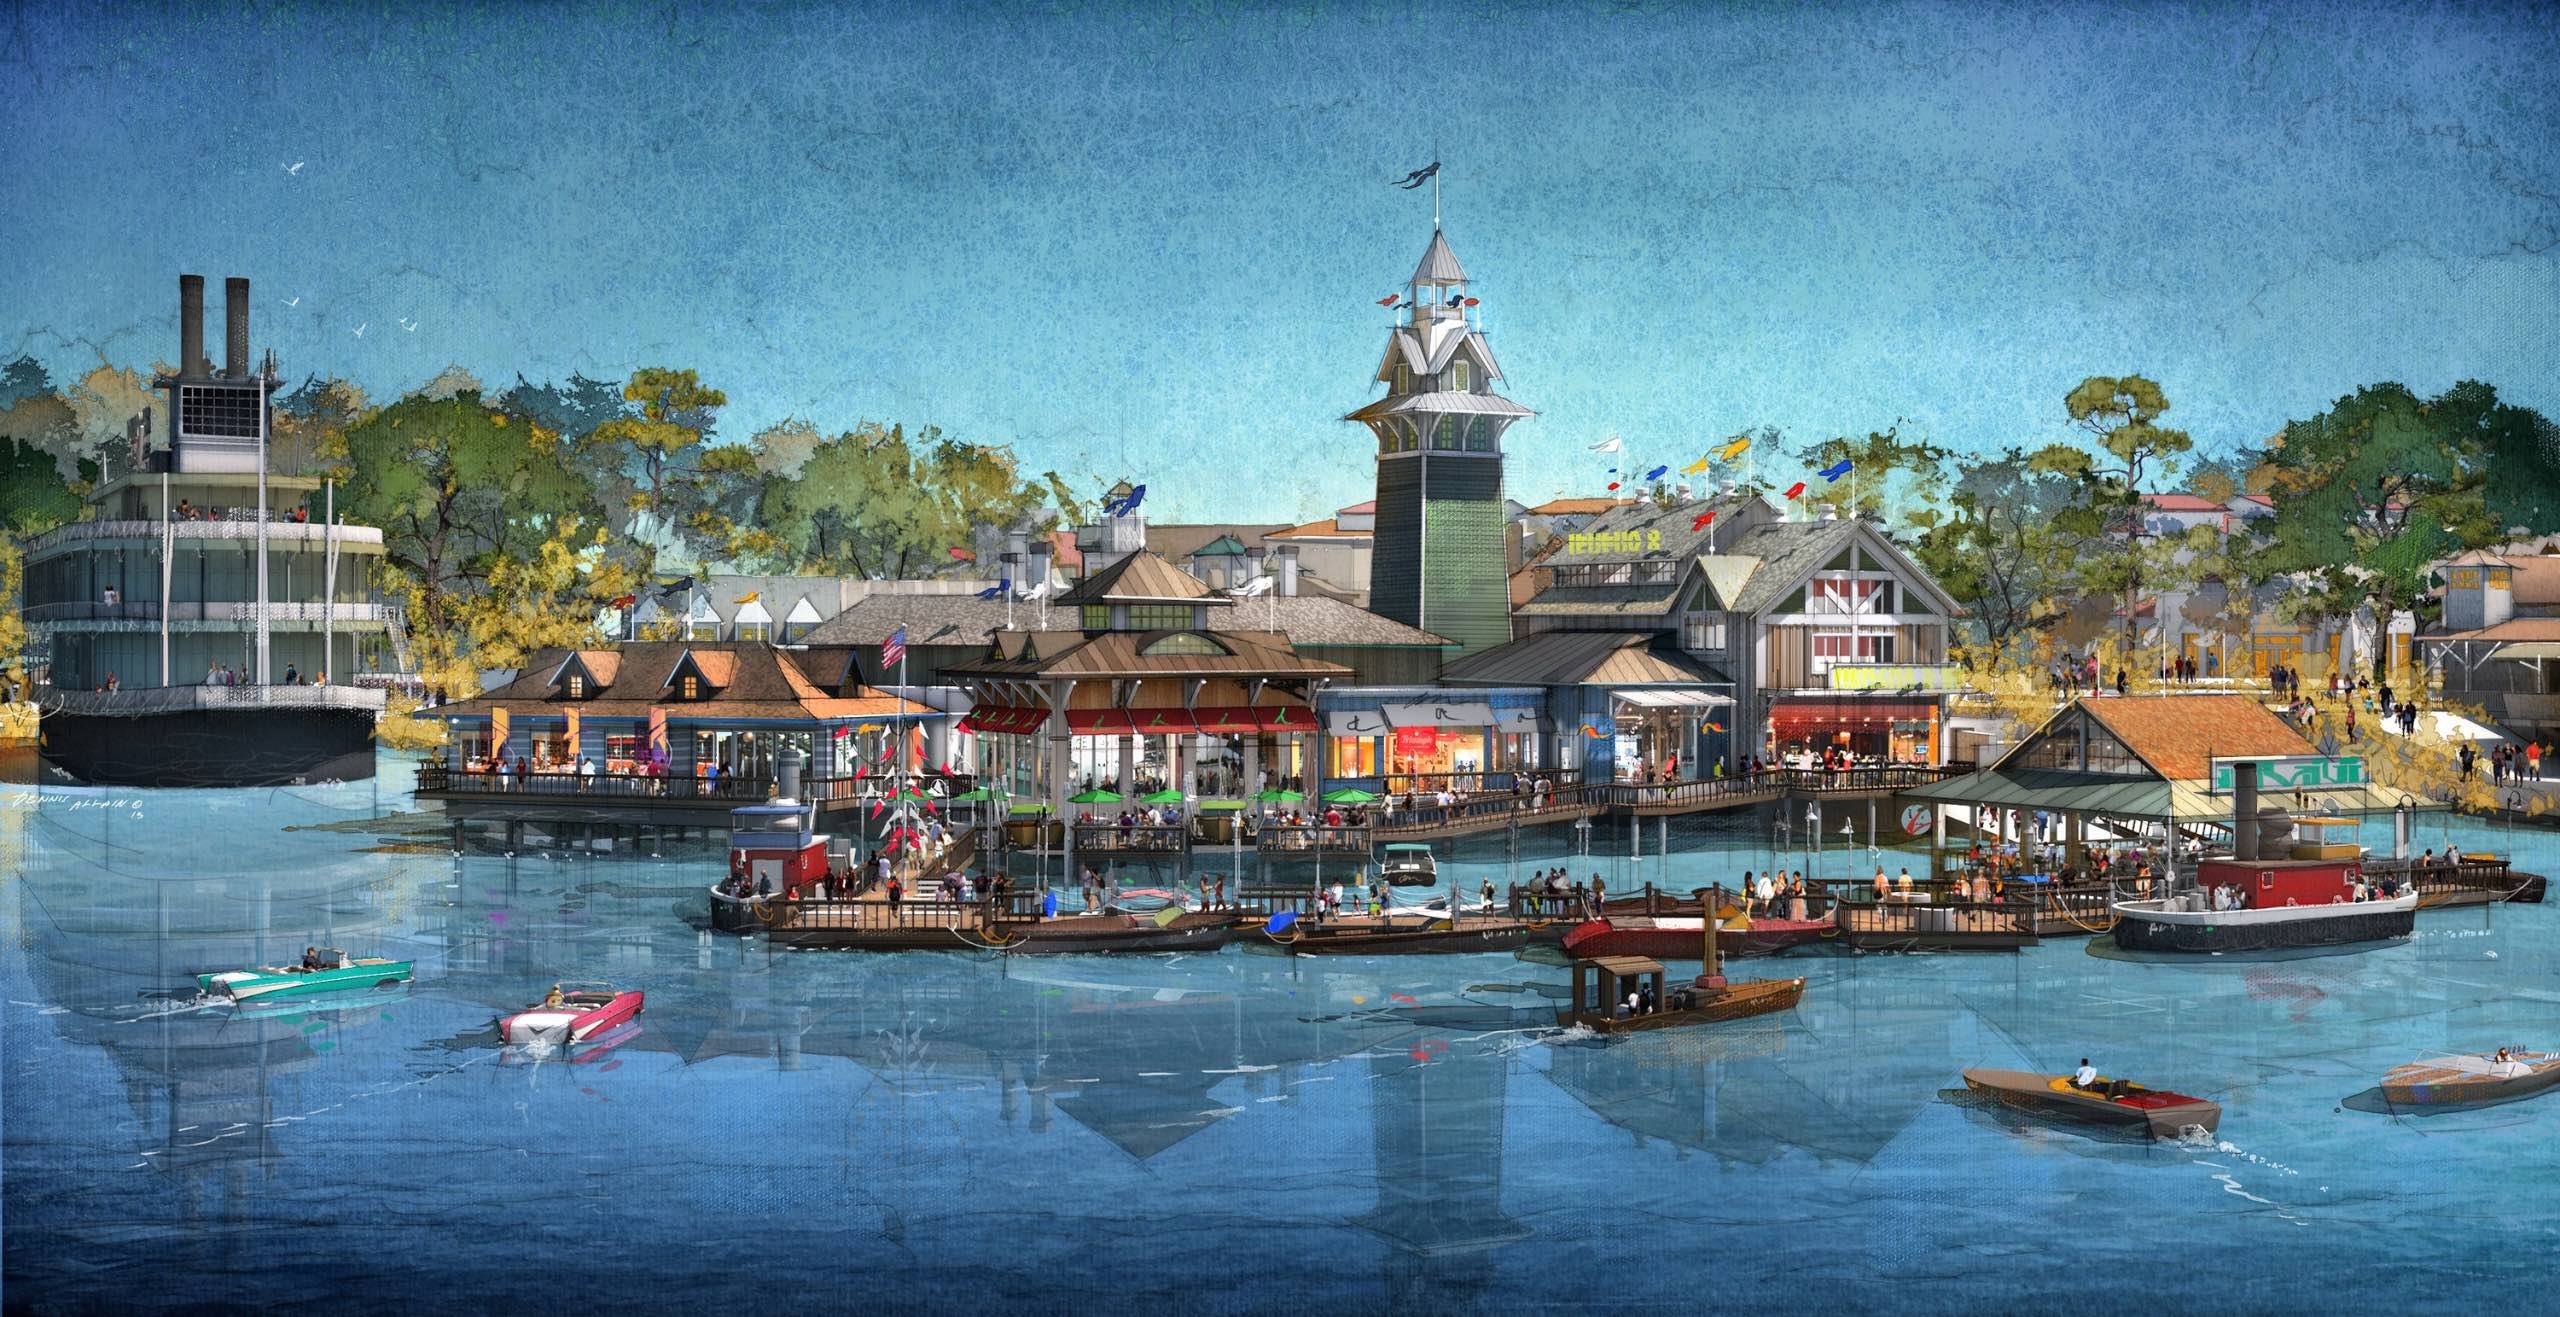 The BOATHOUSE concept art - Water view